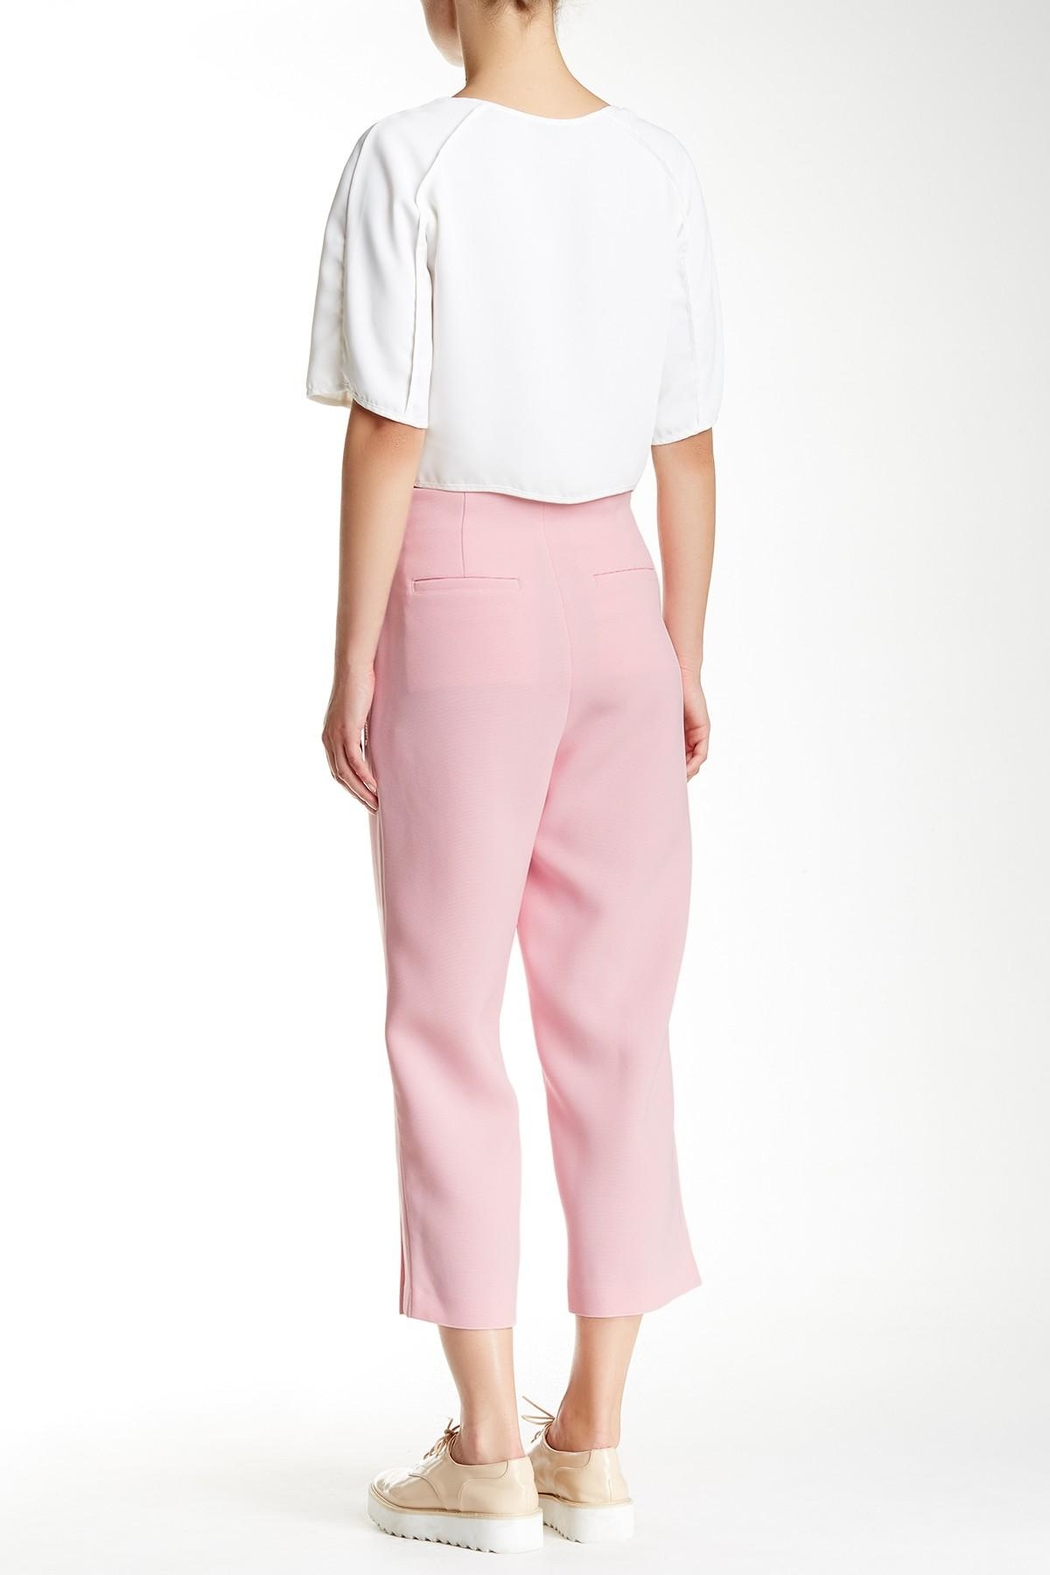 Co + Co BY Coco Rocha Pink Cora Pant - Front Full Image